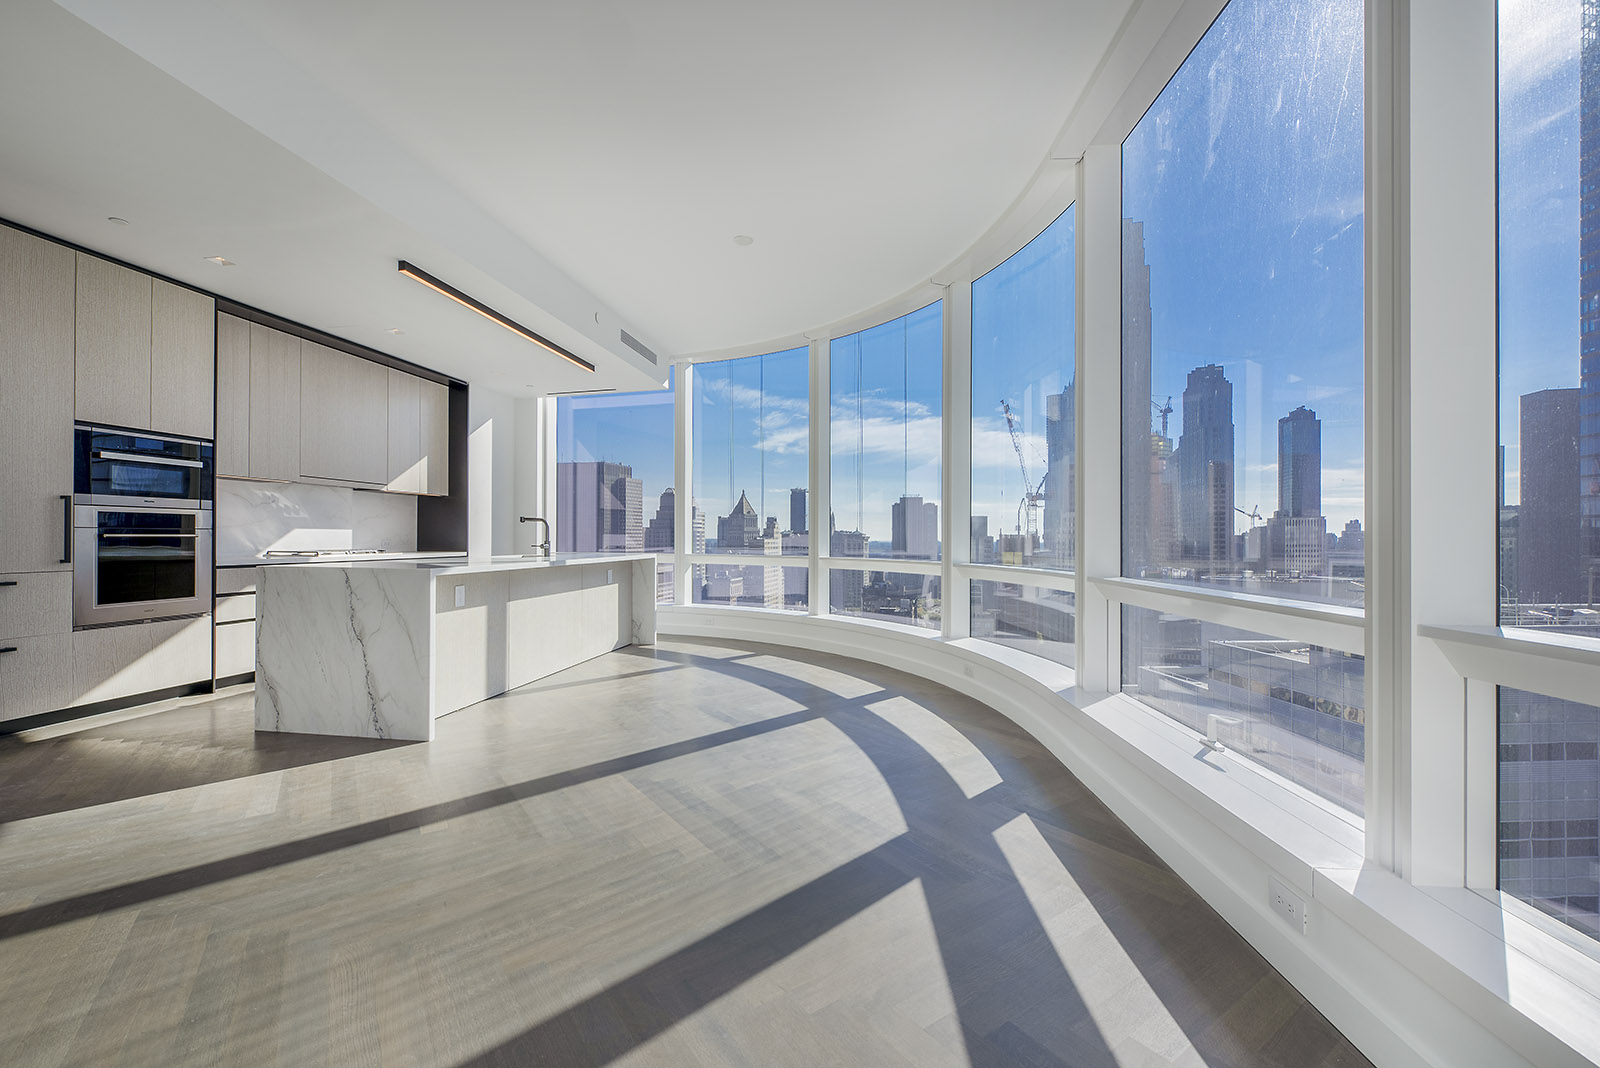 New York Real Estate Agent Careers